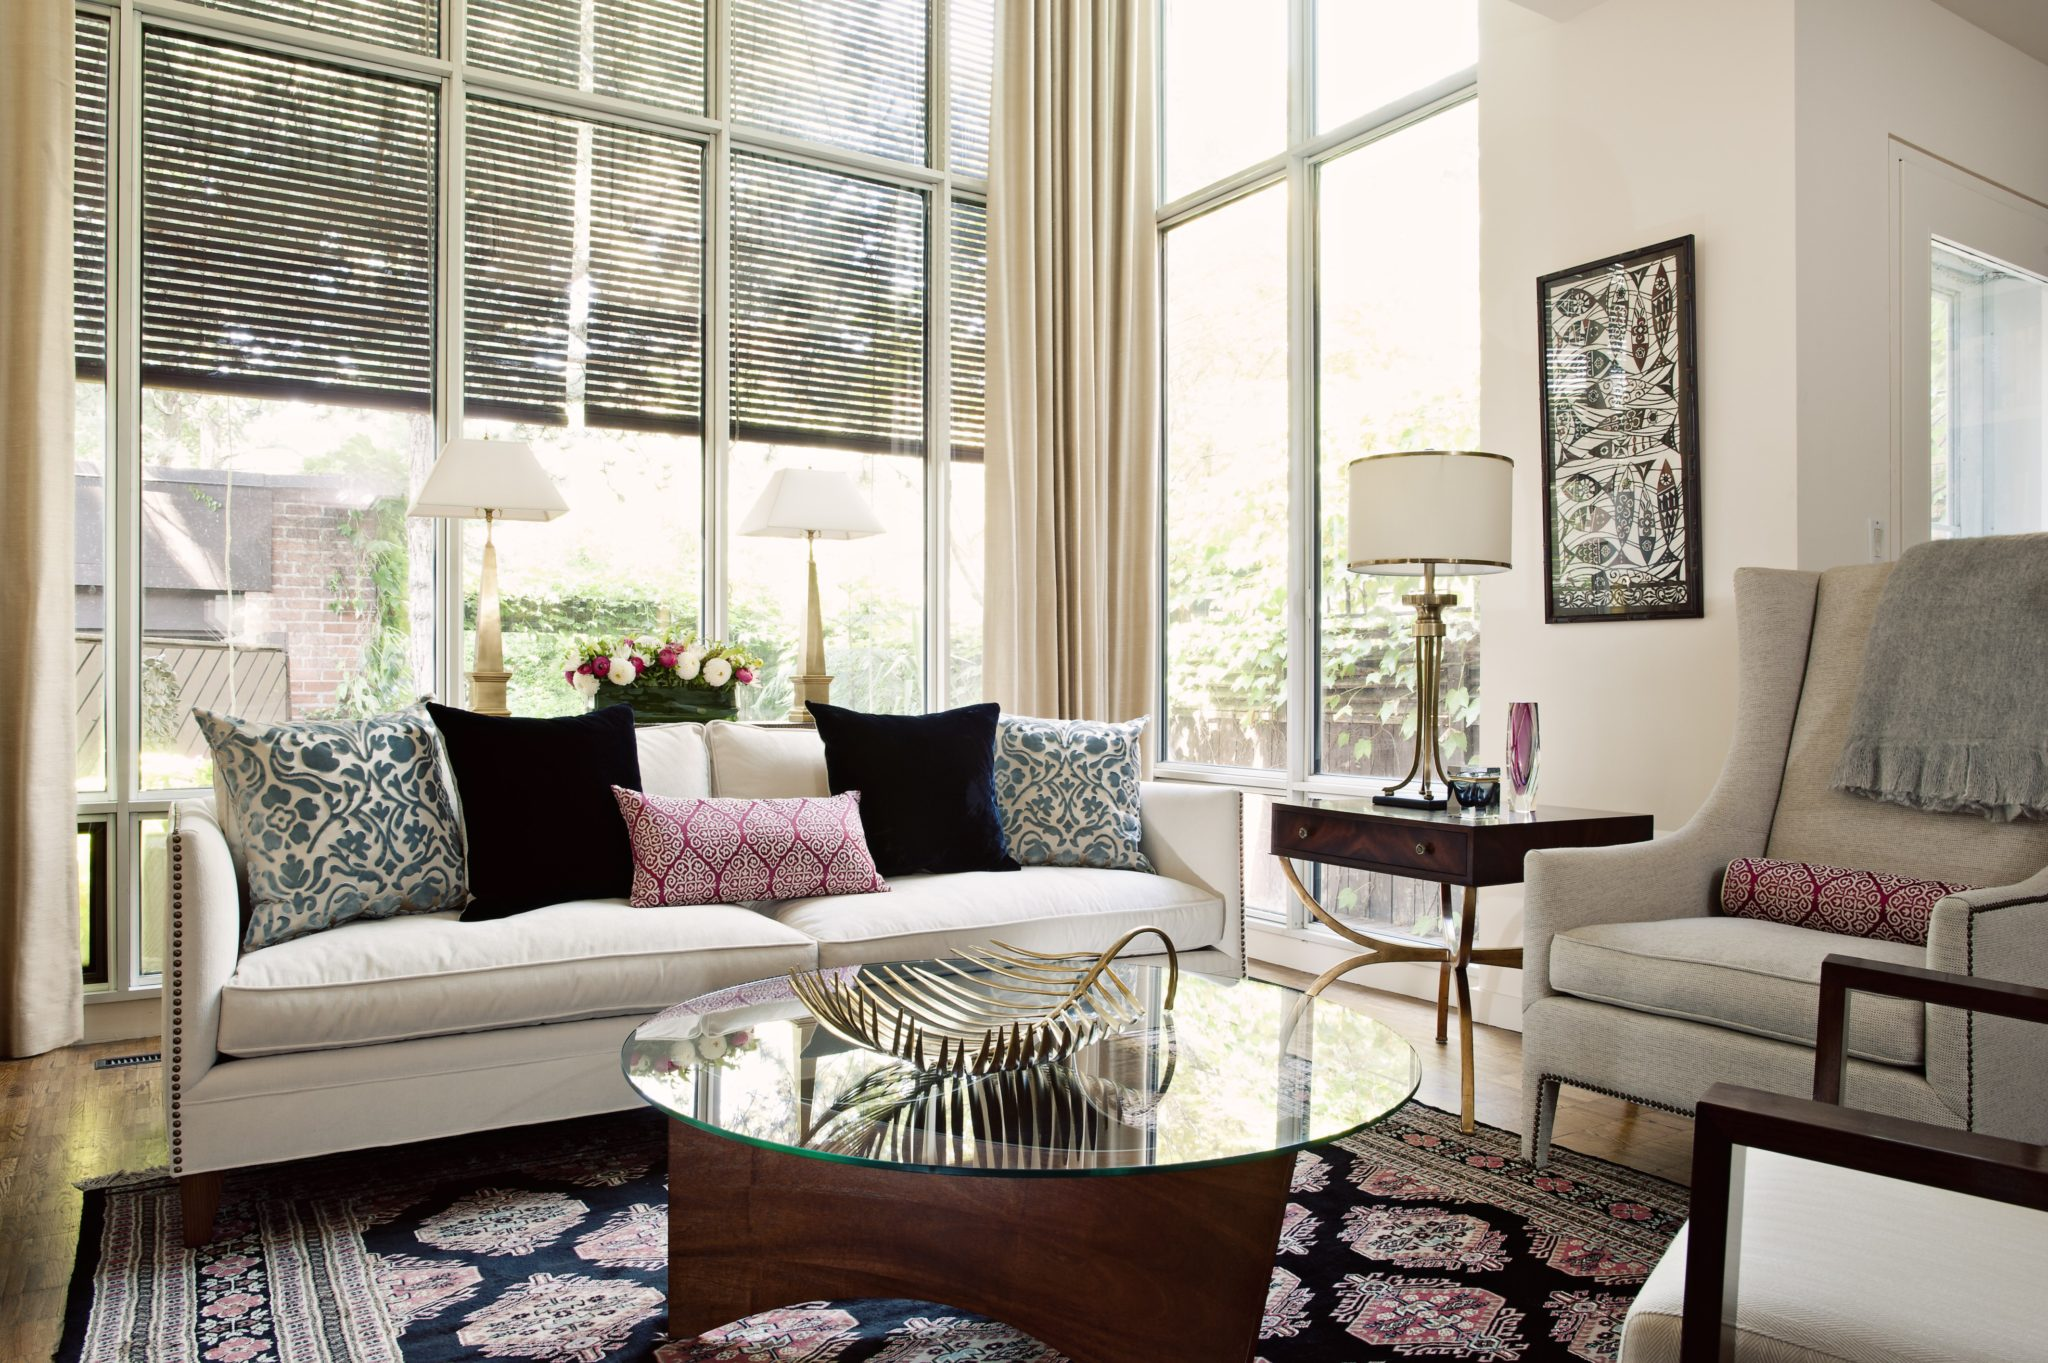 Rosedale living room by Laura Stein Interiors